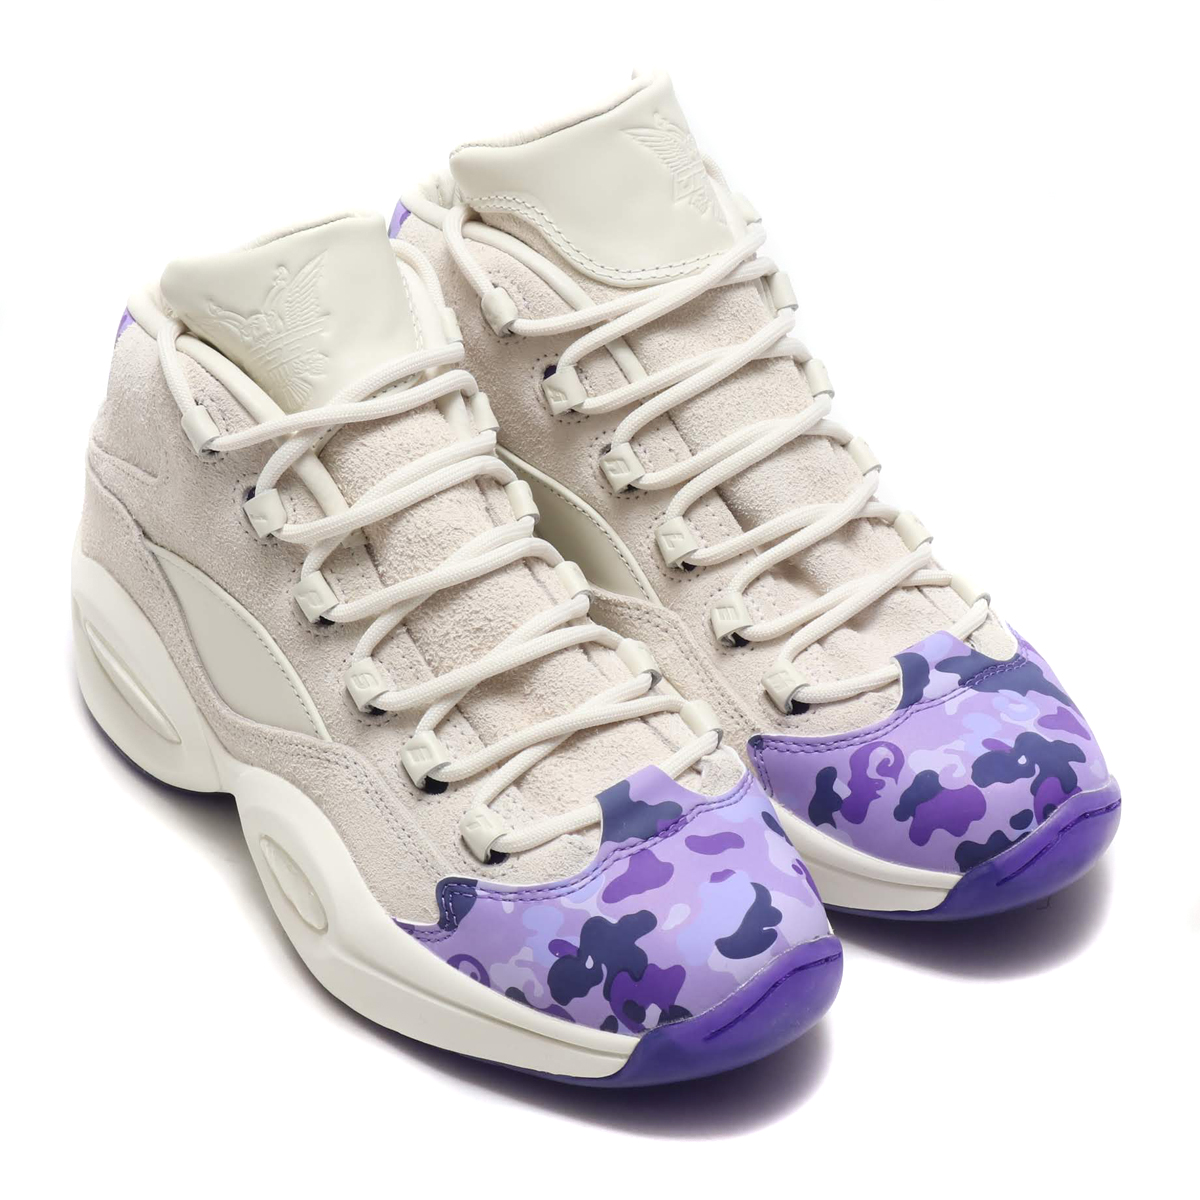 008190a700e Reebok QUESTION MID CAMRON (Reebok question mid CAMRON) CHALK RUSH  ORCHID TEAM PURPLE CLASSIC WHITE 18FW-I